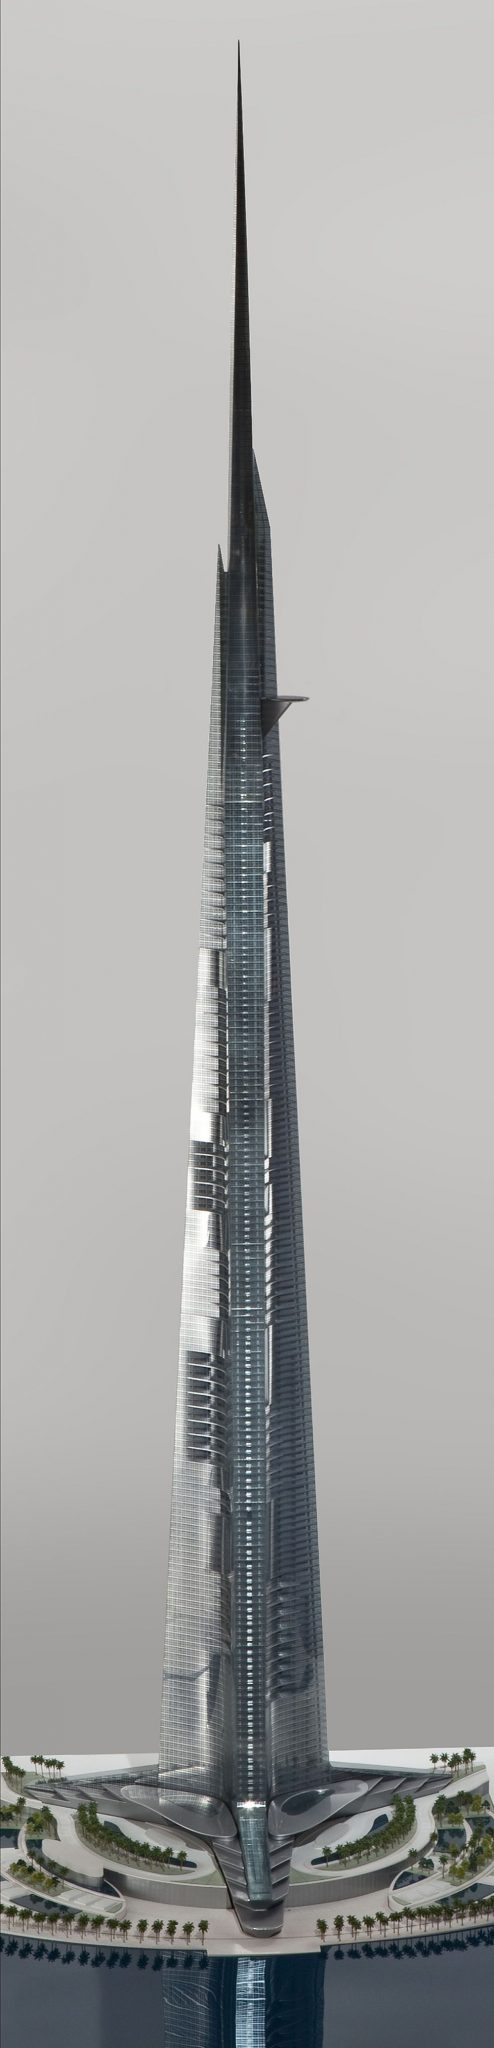 Kingdom Tower Jeddah photo - Tallest building in the world